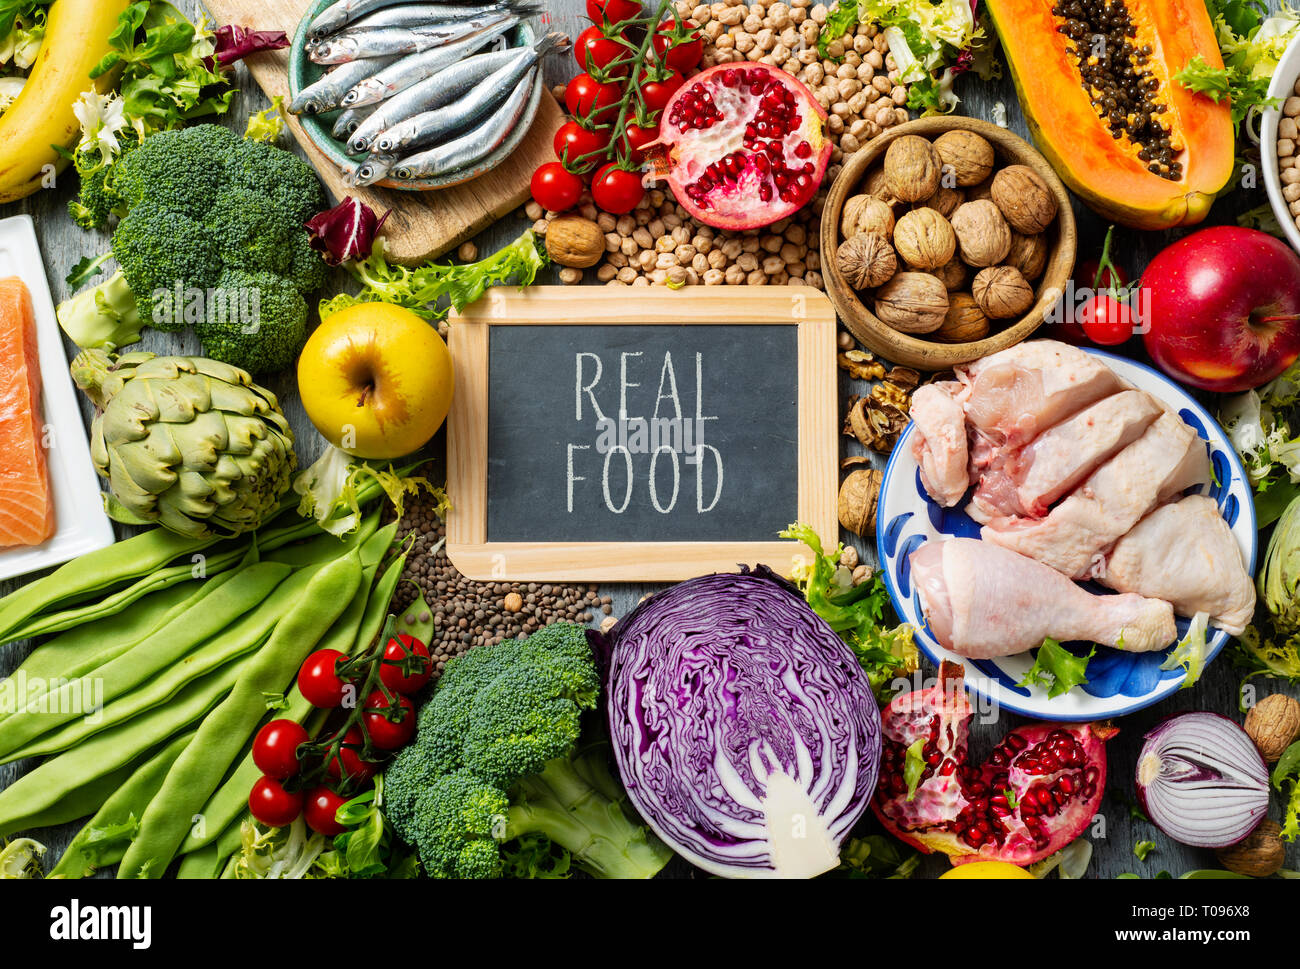 a chalkboard with the text real food written in it, on a pile of unprocessed food, such as different raw fruits and vegetables, some legumes and nuts, - Stock Image